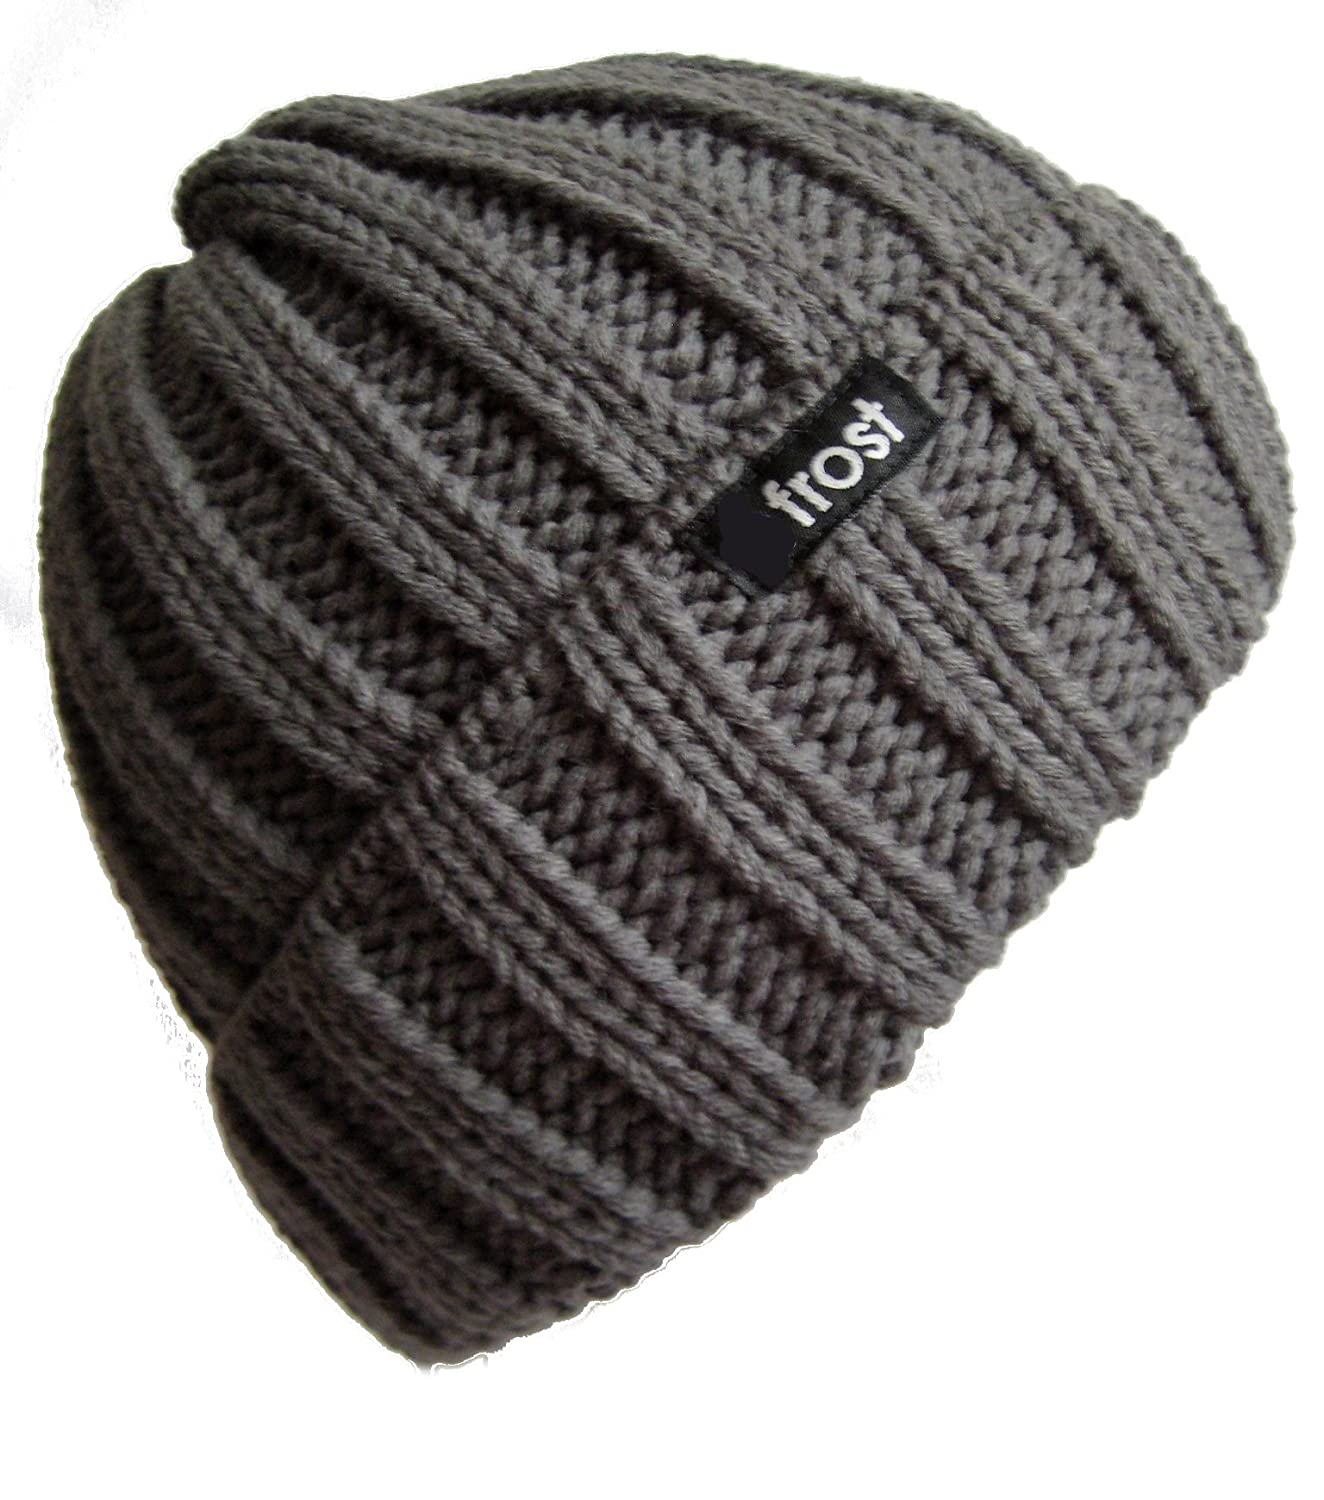 Frost Hats Fall Winter CHARCOAL Skully Hat Beanie Frost Hats at Amazon  Men s Clothing store  Skull Caps b62675252d2